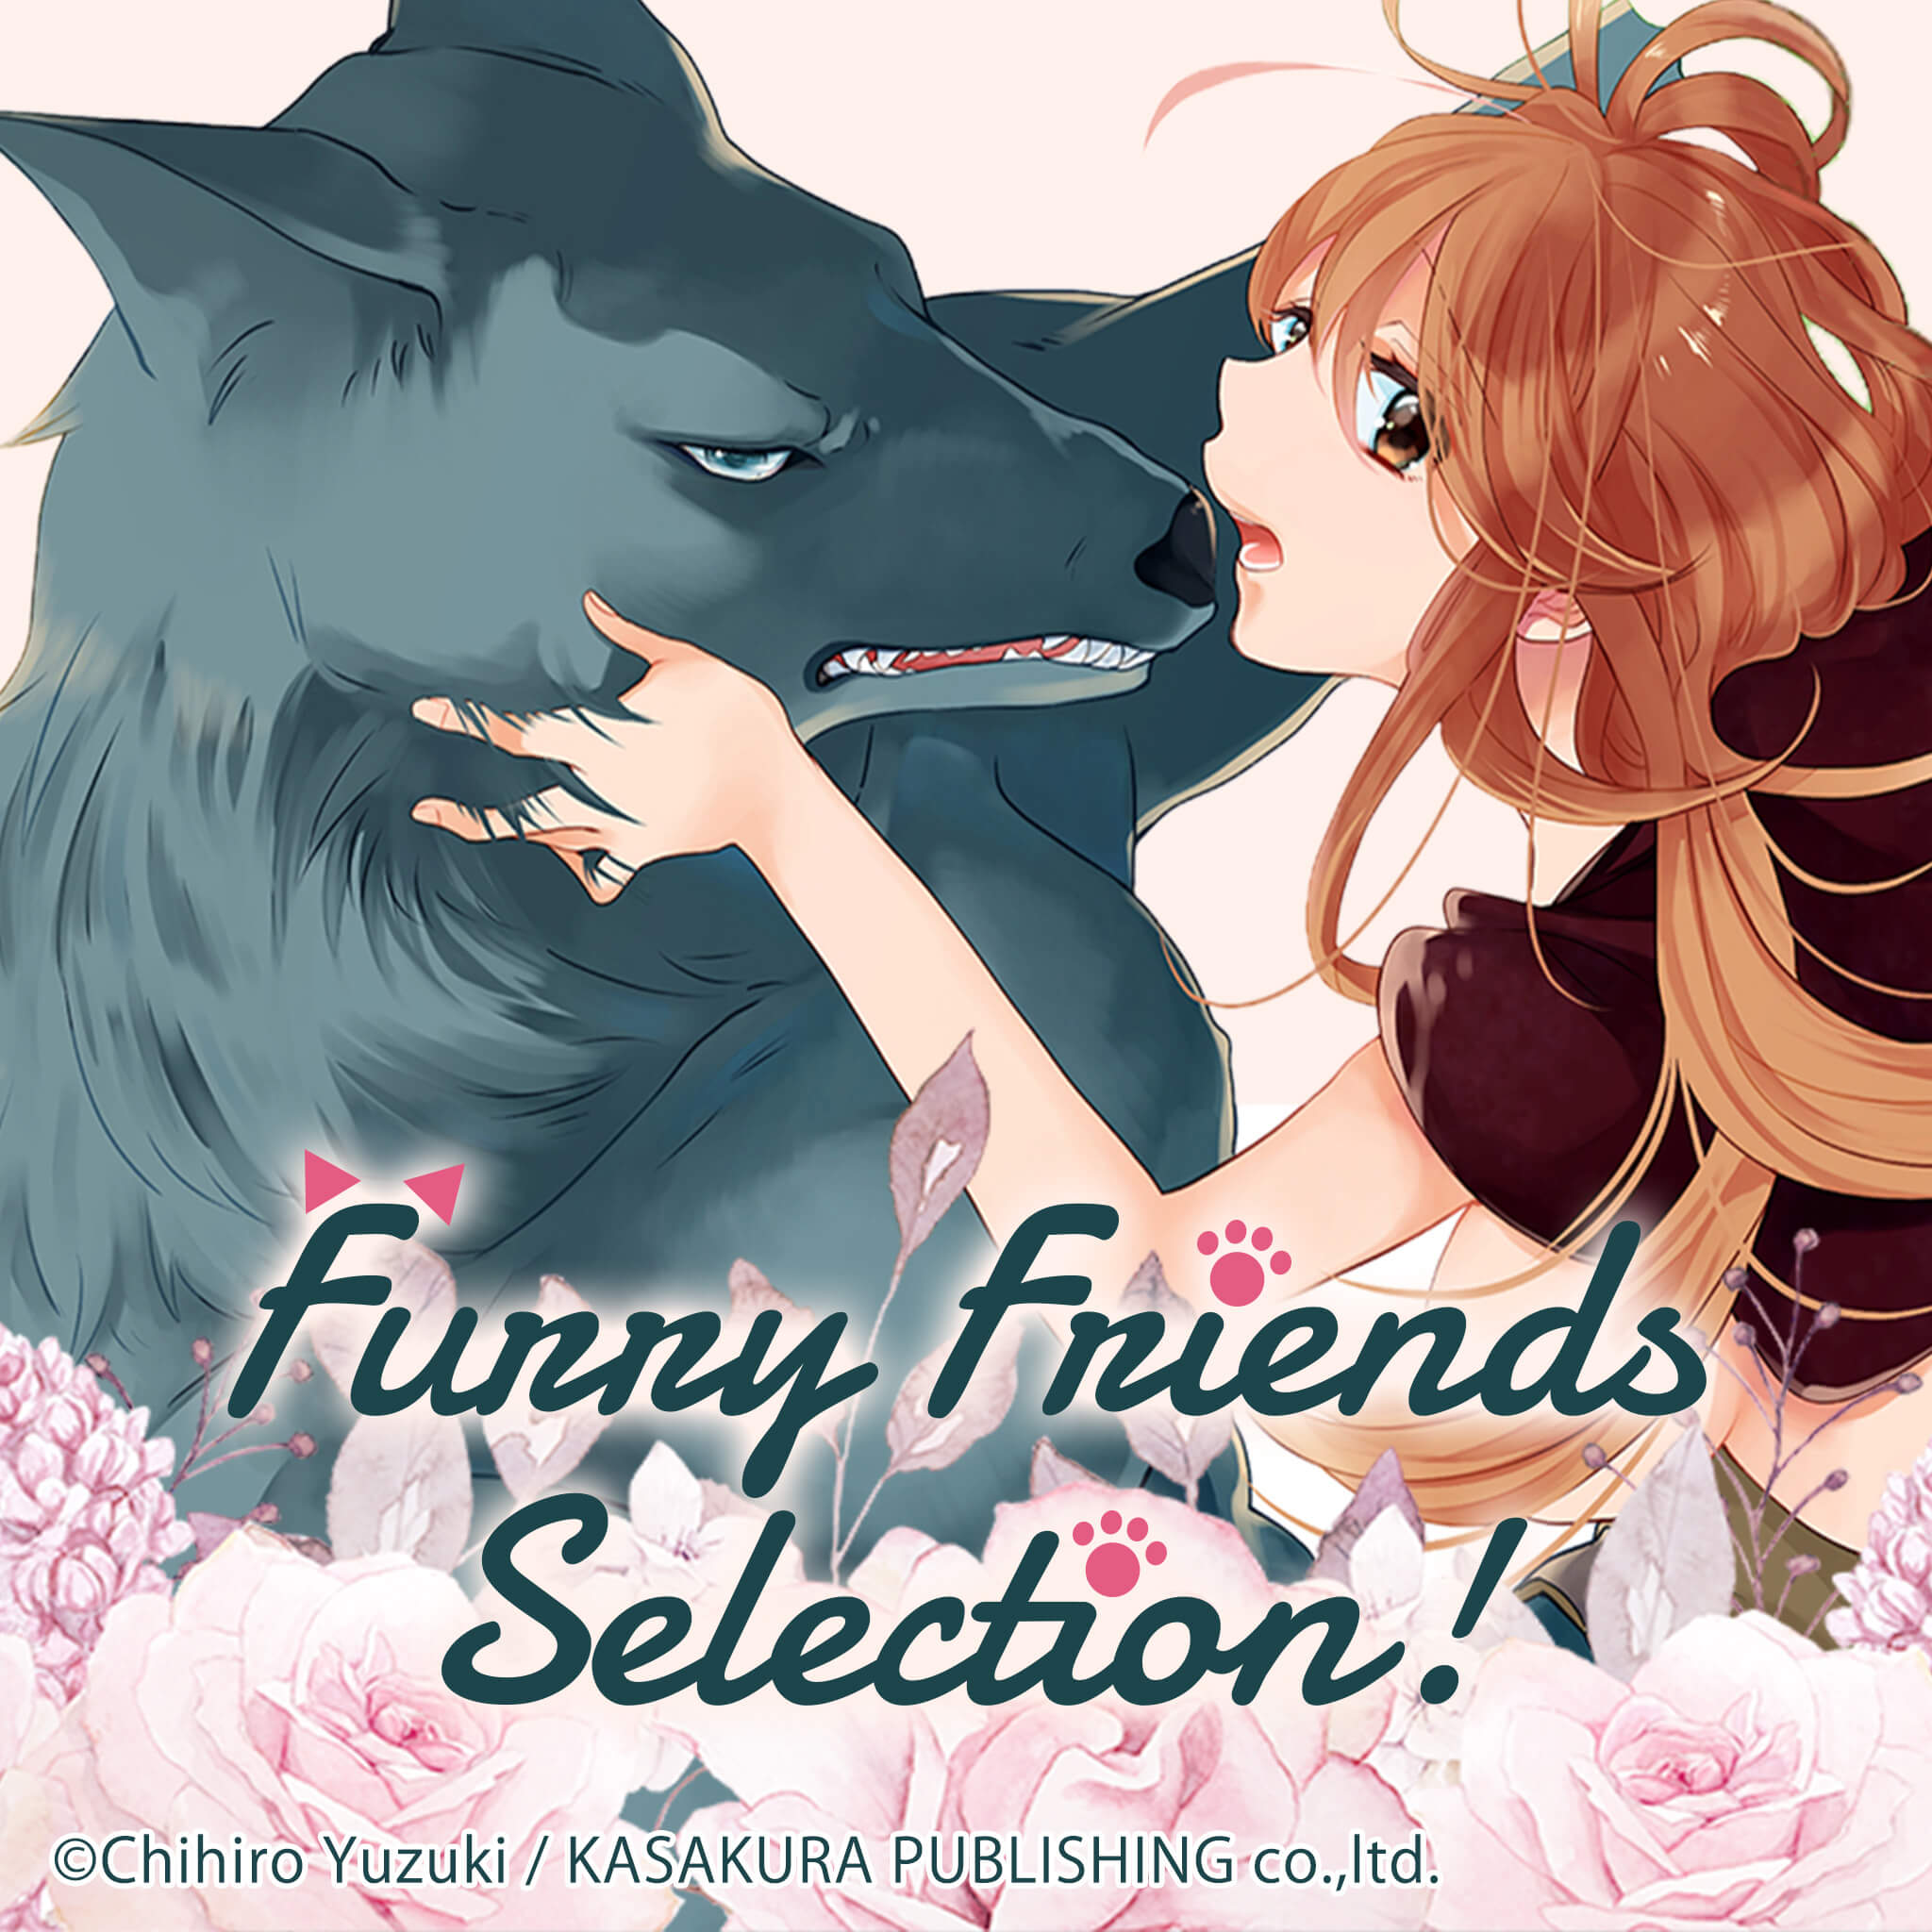 Furry Friends Selection!